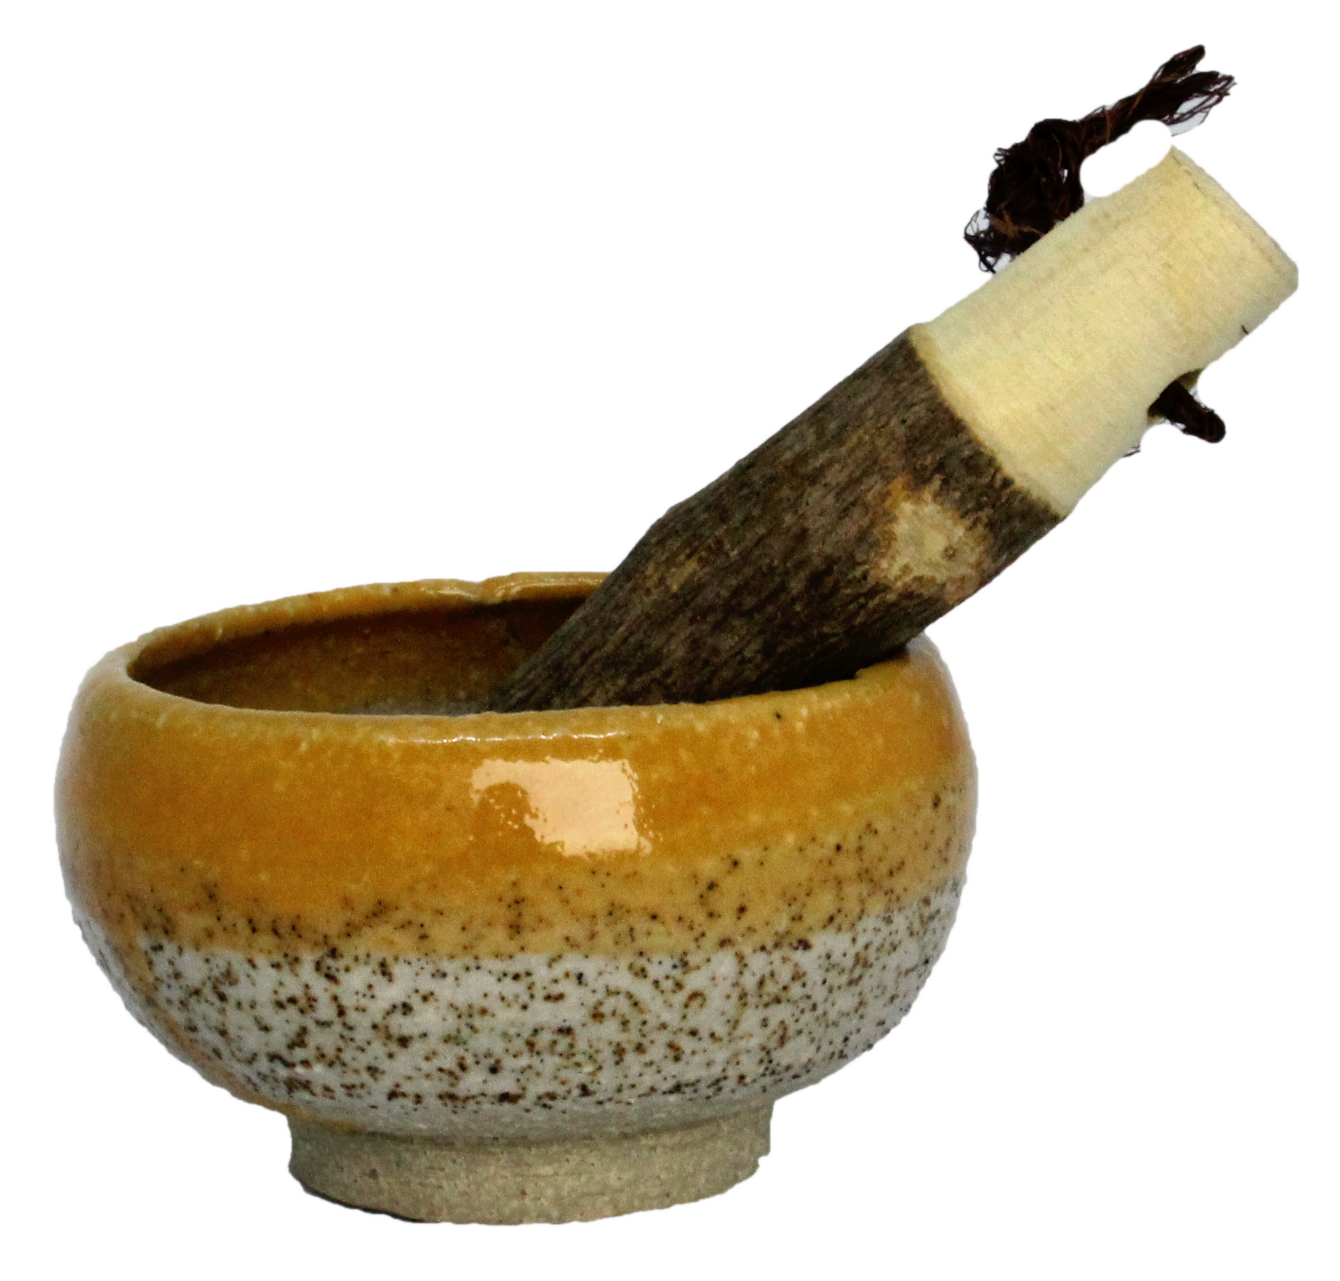 Japanese pottery pestle and mortar handmade